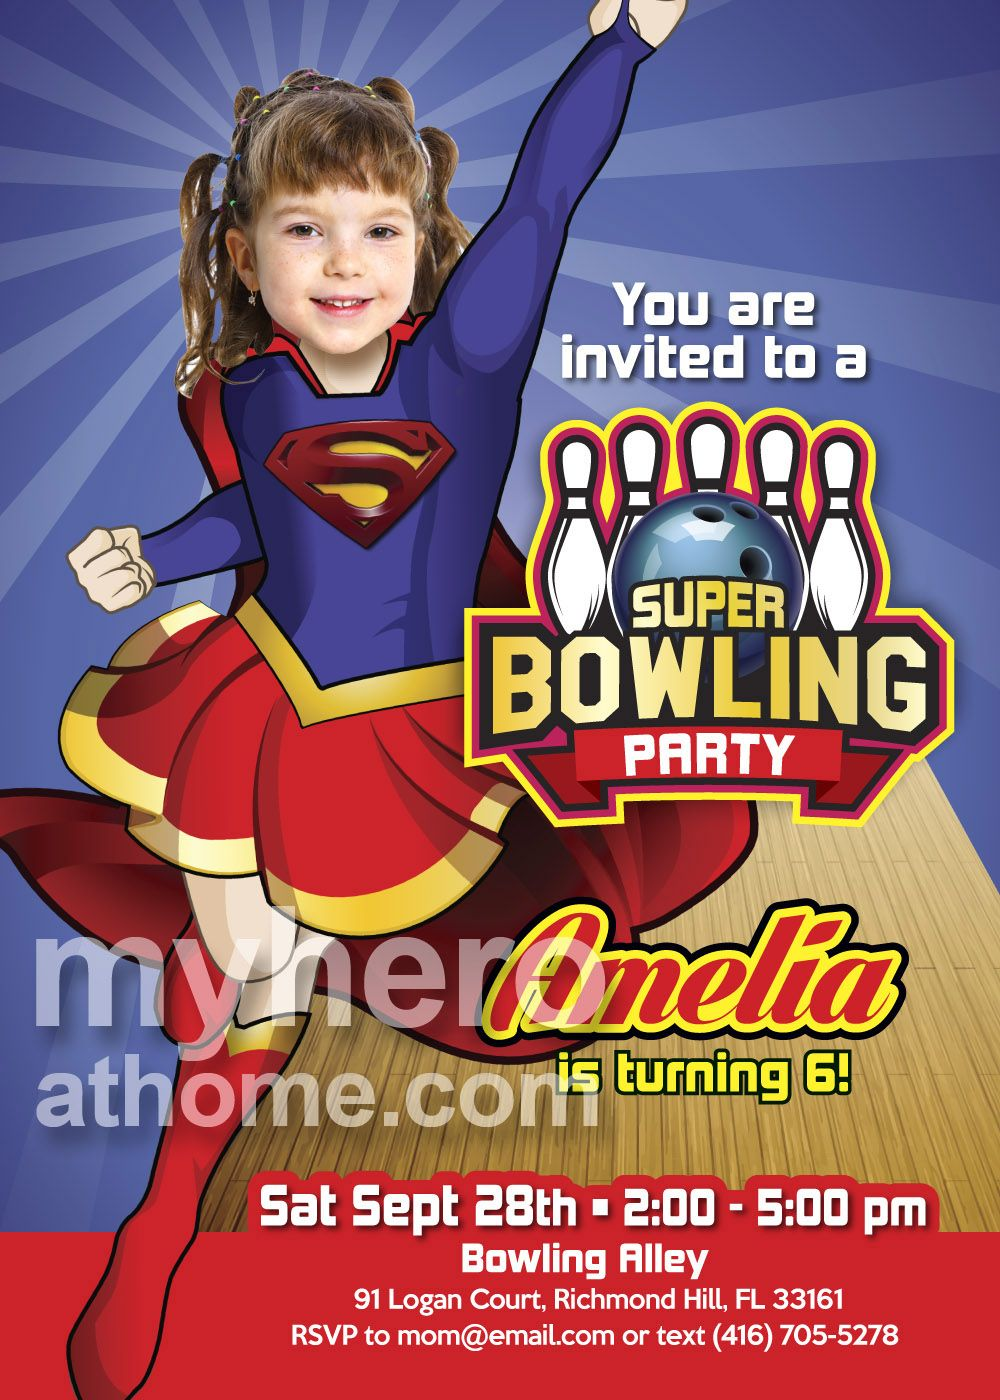 Bowling Party Supergirl Birthday Invitation With Your Girl As